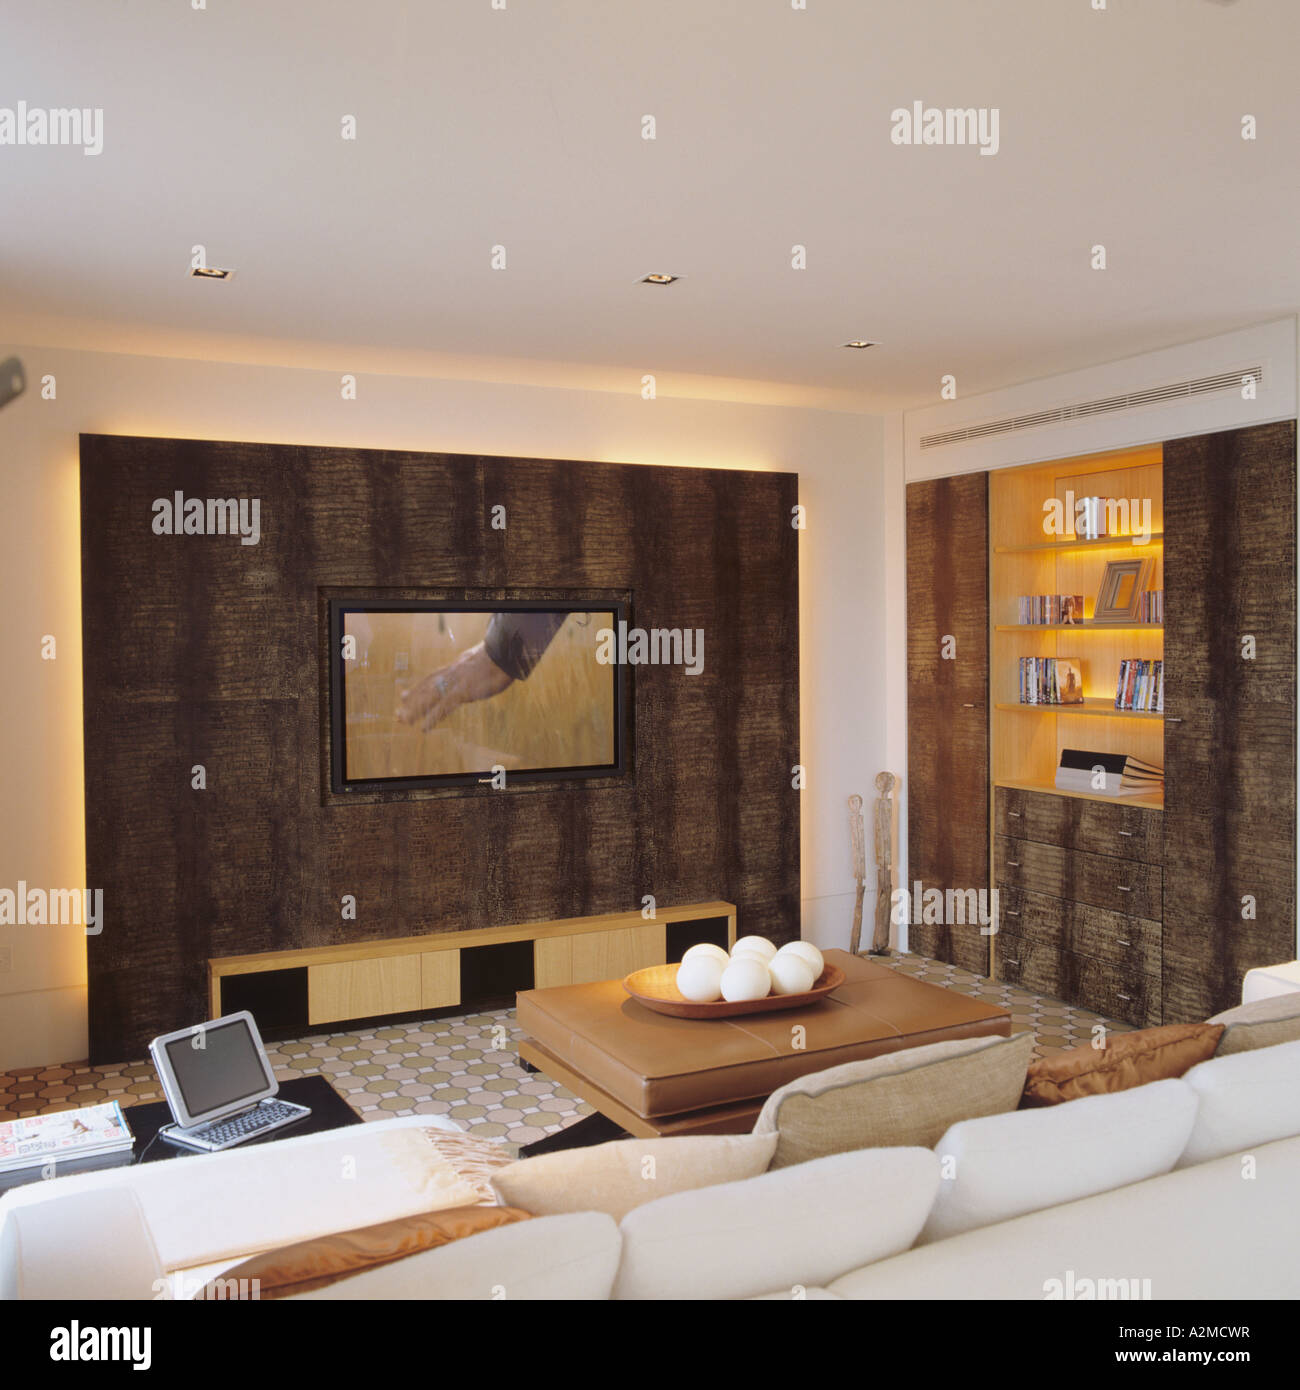 Living room with flat screen and gold recessed shelving in Thames penthouse apartment, London - Stock Image